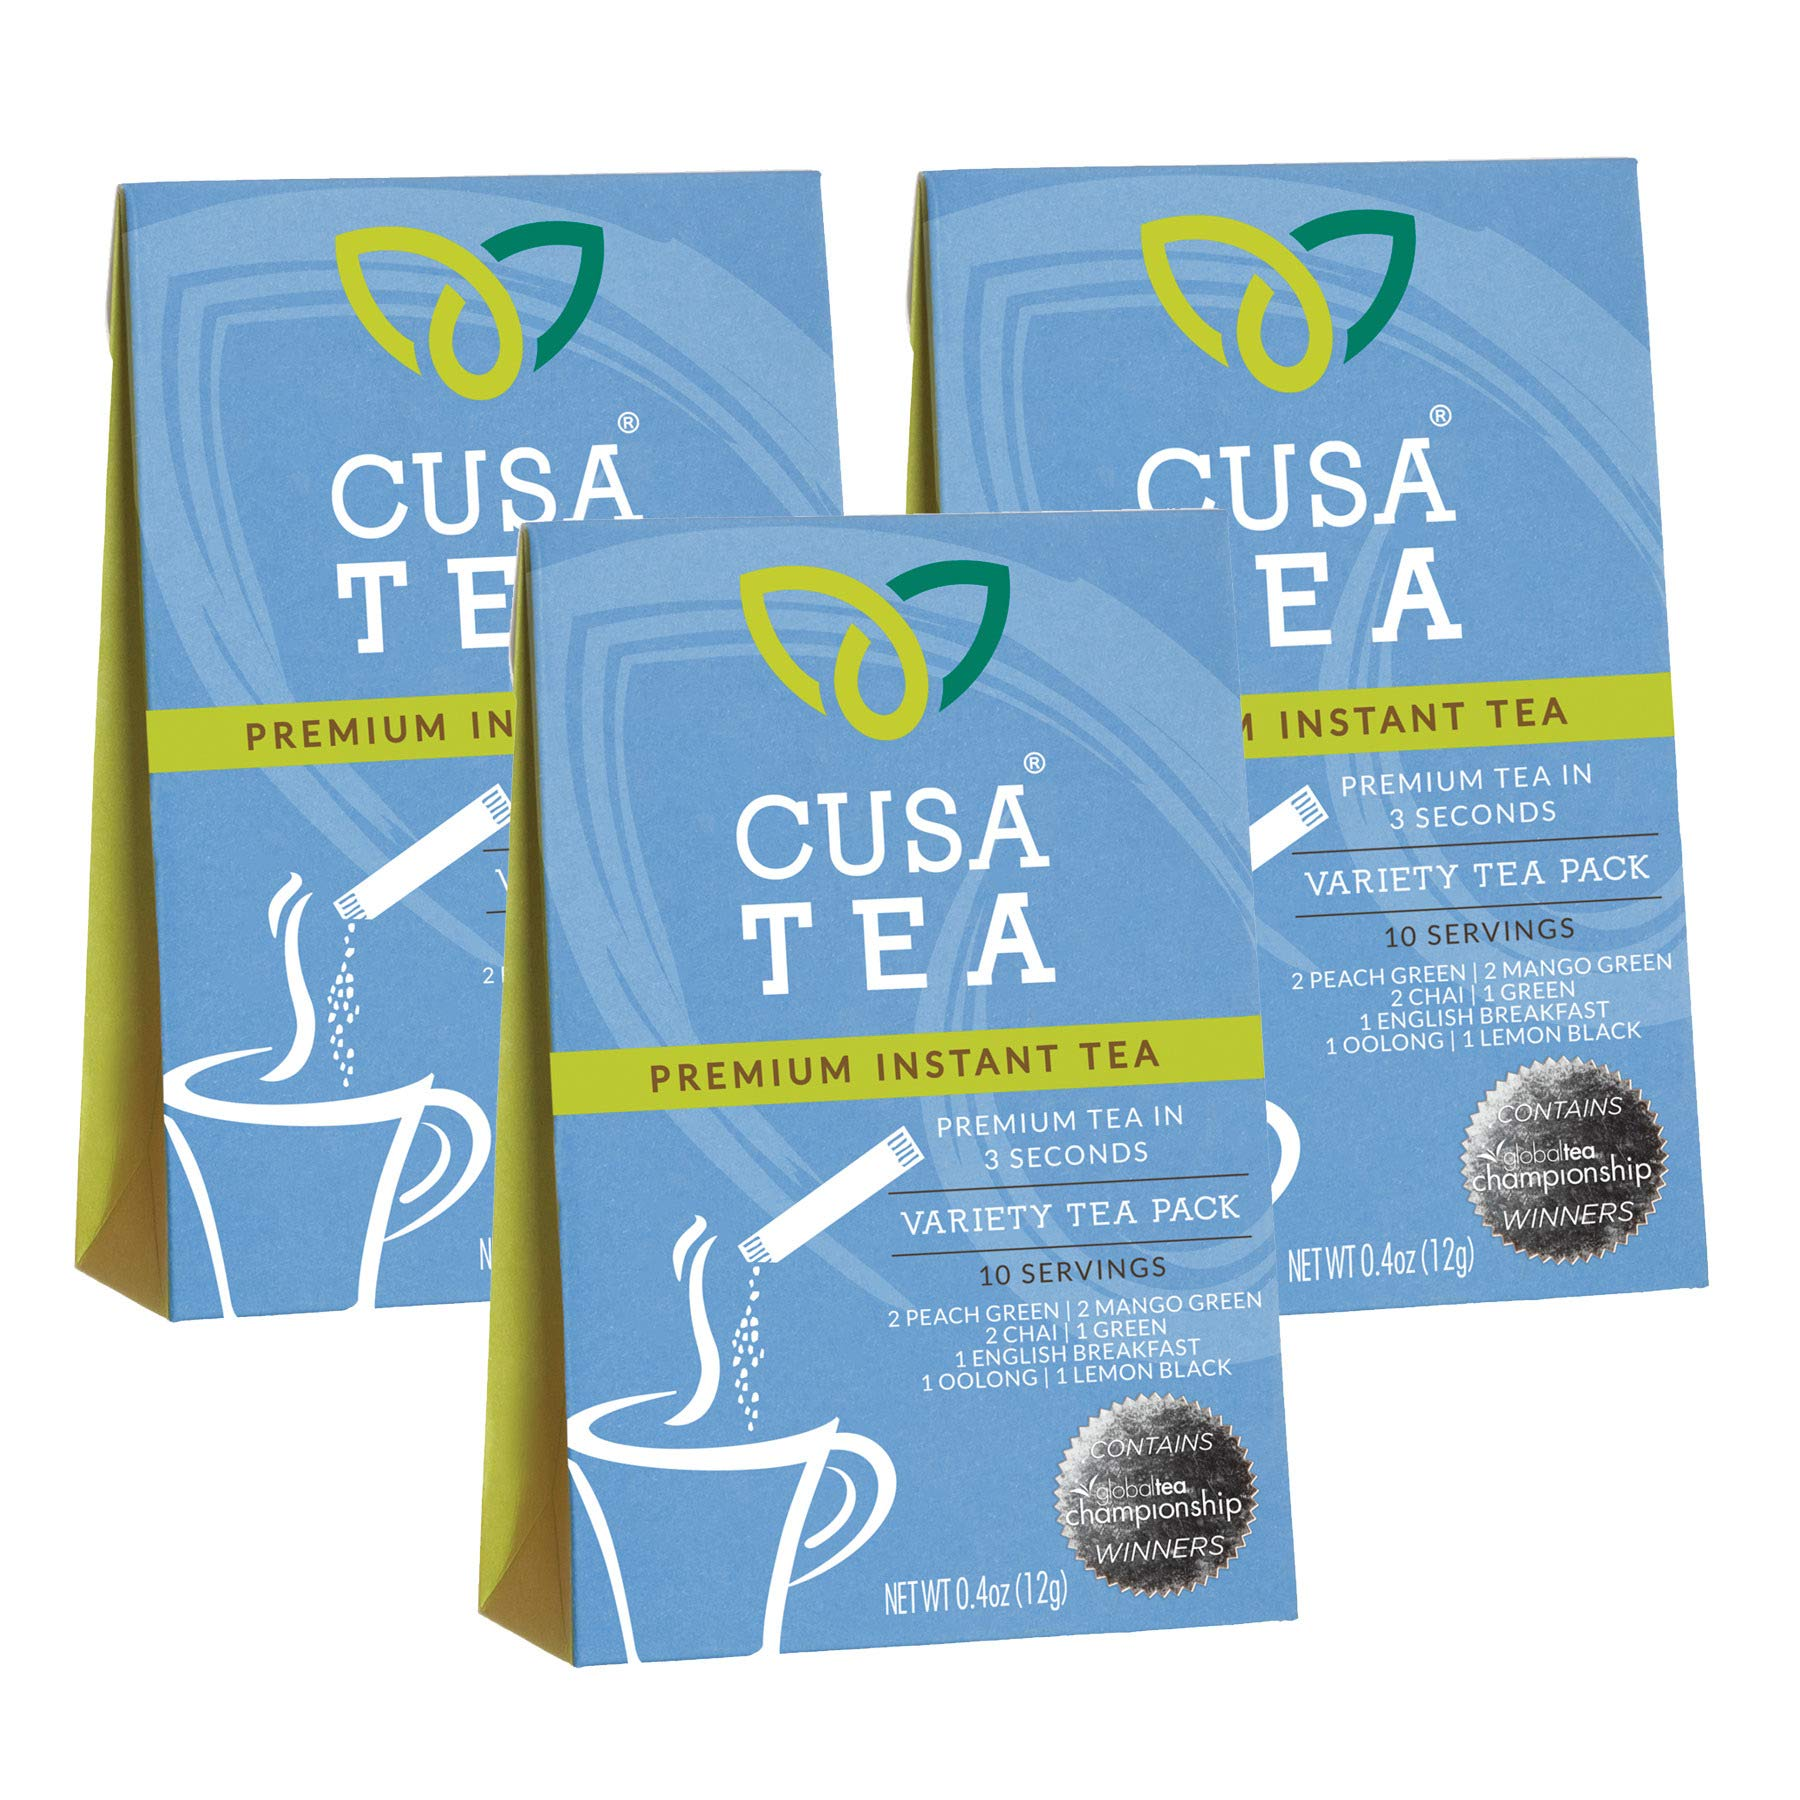 Cusa Tea Variety Packs and Bundles: Premium Instant Tea - No Sugar or Artificial Ingredients - Ready in Seconds - Iced or Hot (Three Variety Packs)